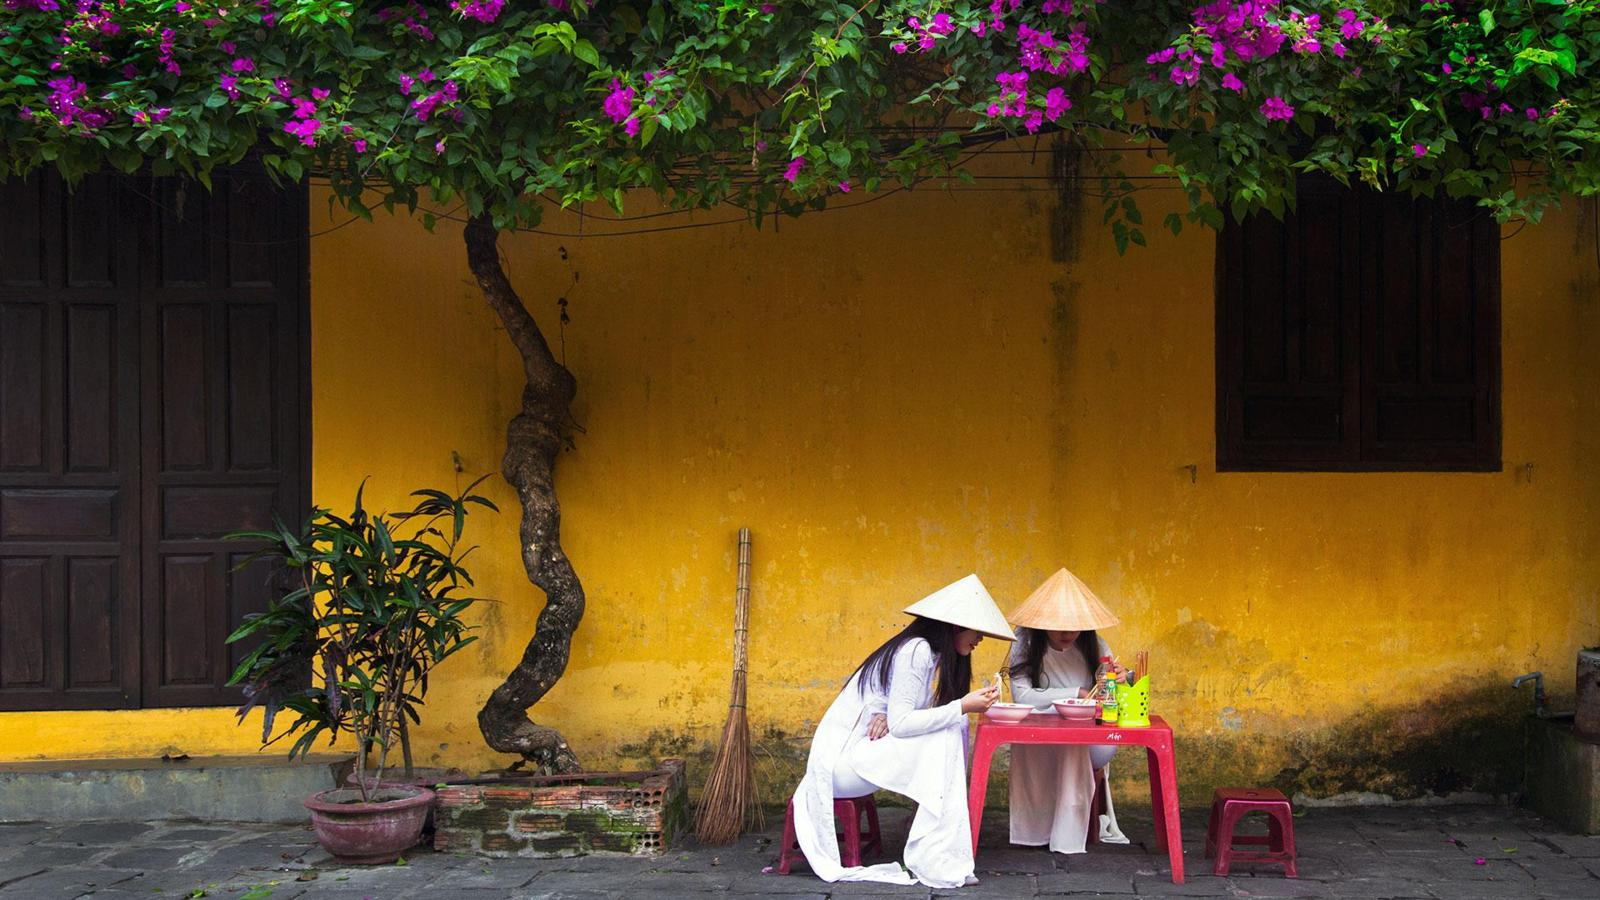 A bewitching town drenched in yellow - Ảnh minh hoạ 9